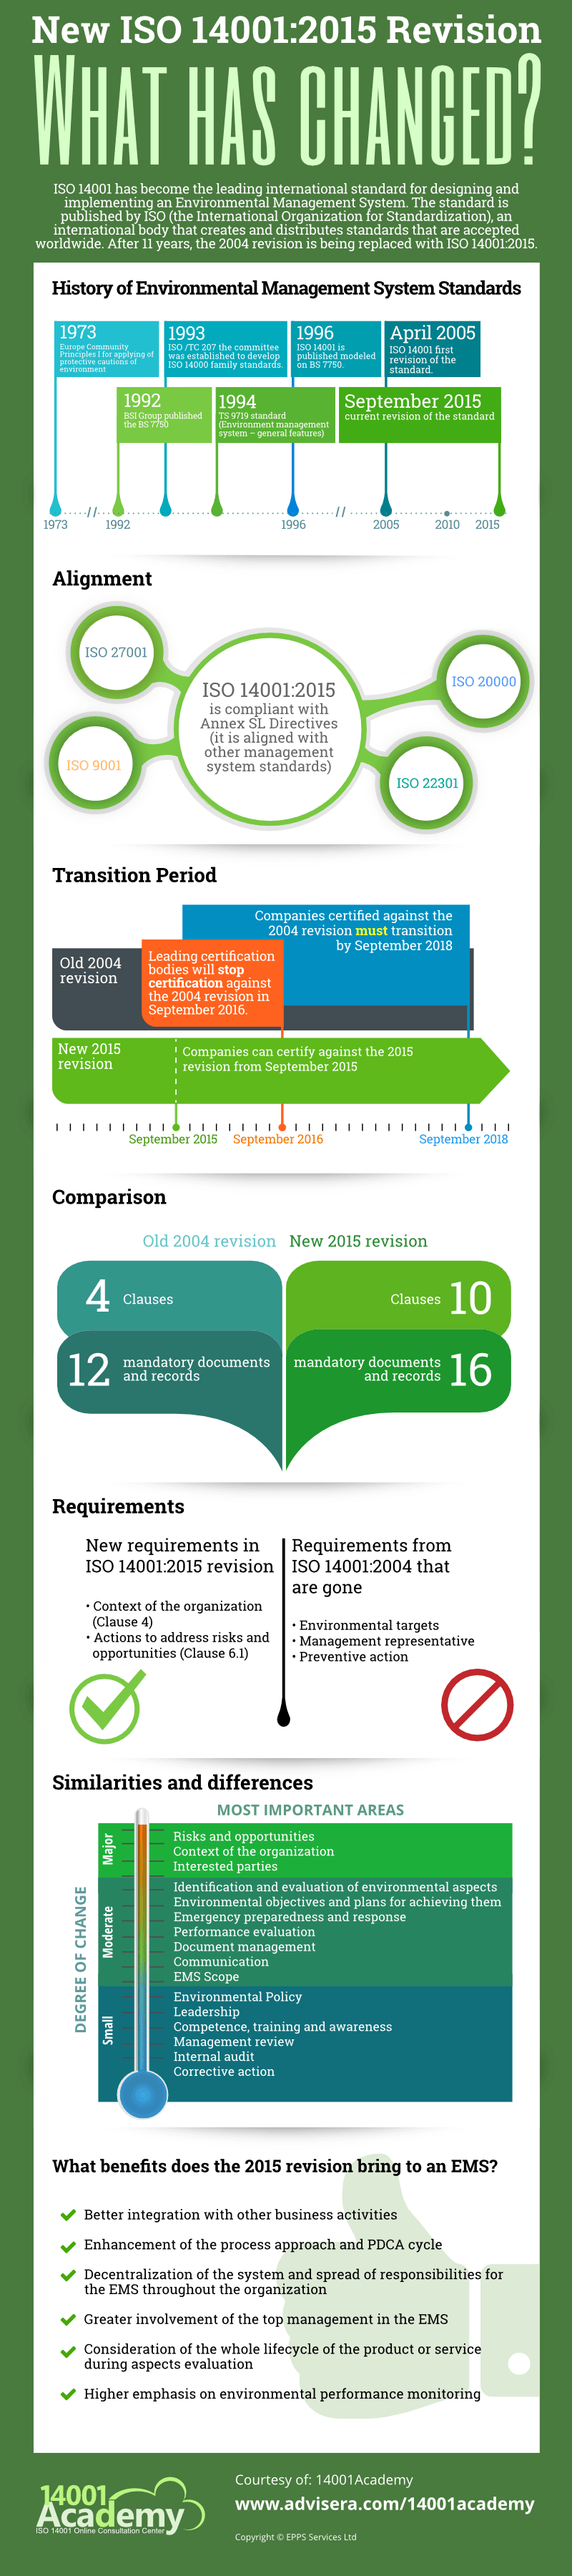 ISO 14001:2015 vs. 2004 revision changes